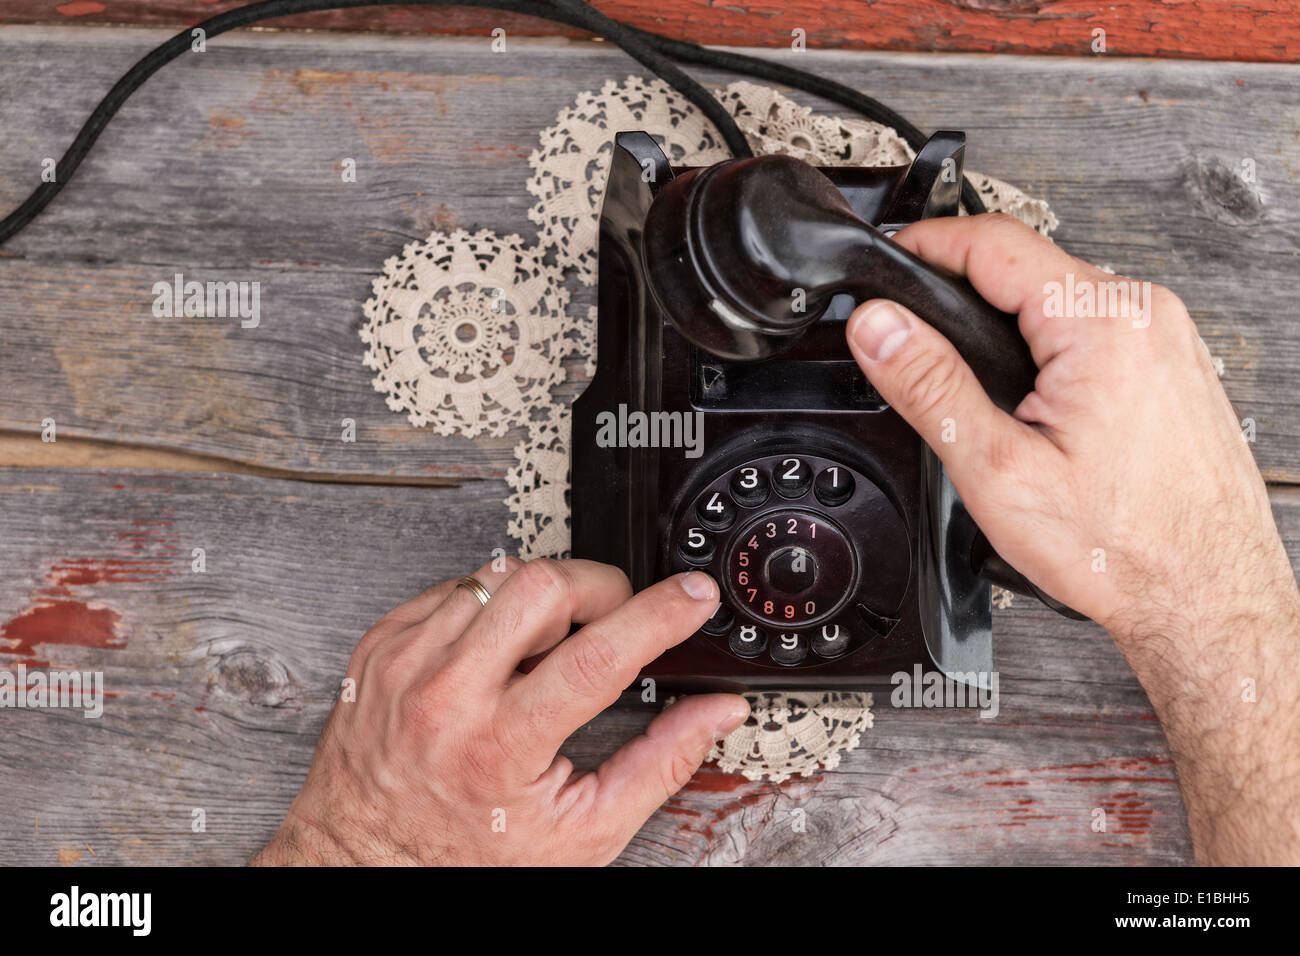 High angle view of the hands of a married man dialing out on an old rotary telephone standing on a weathered rustic table top - Stock Image